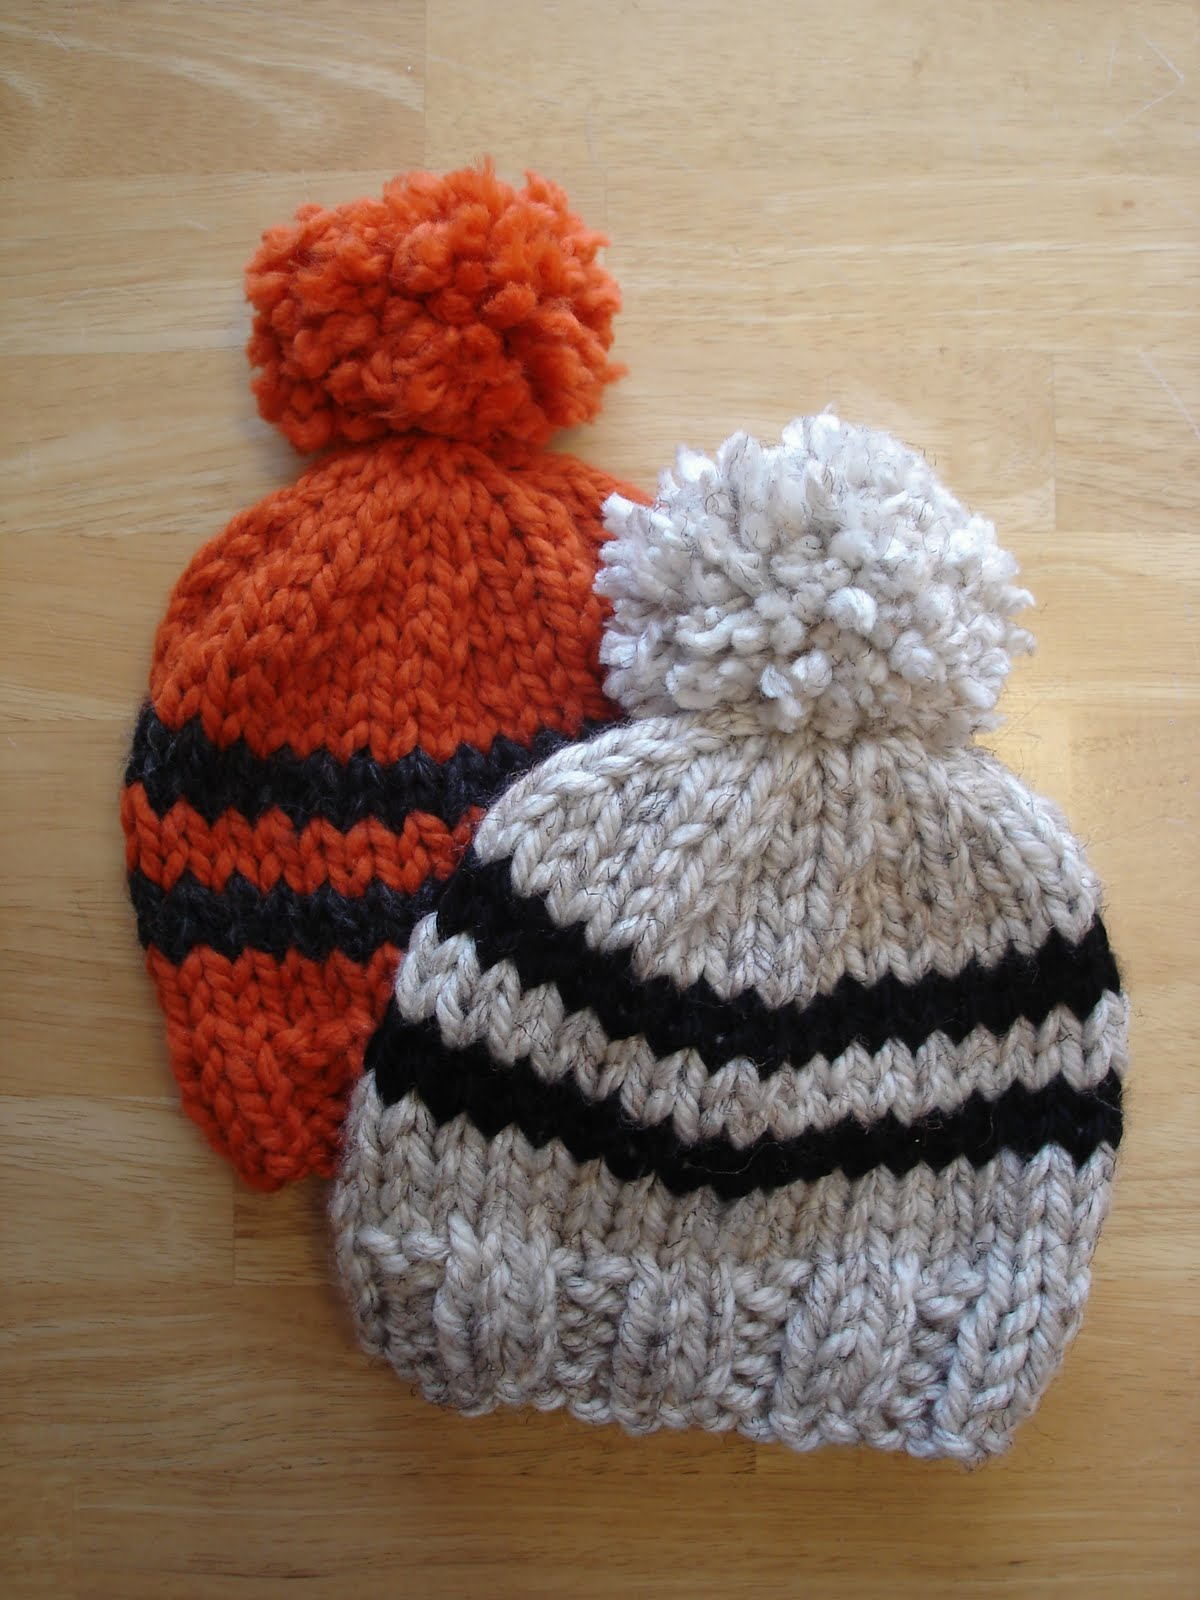 Knitting Pattern For Baby Hat And Scarf : Fiber Flux: Free Knitting Patterns